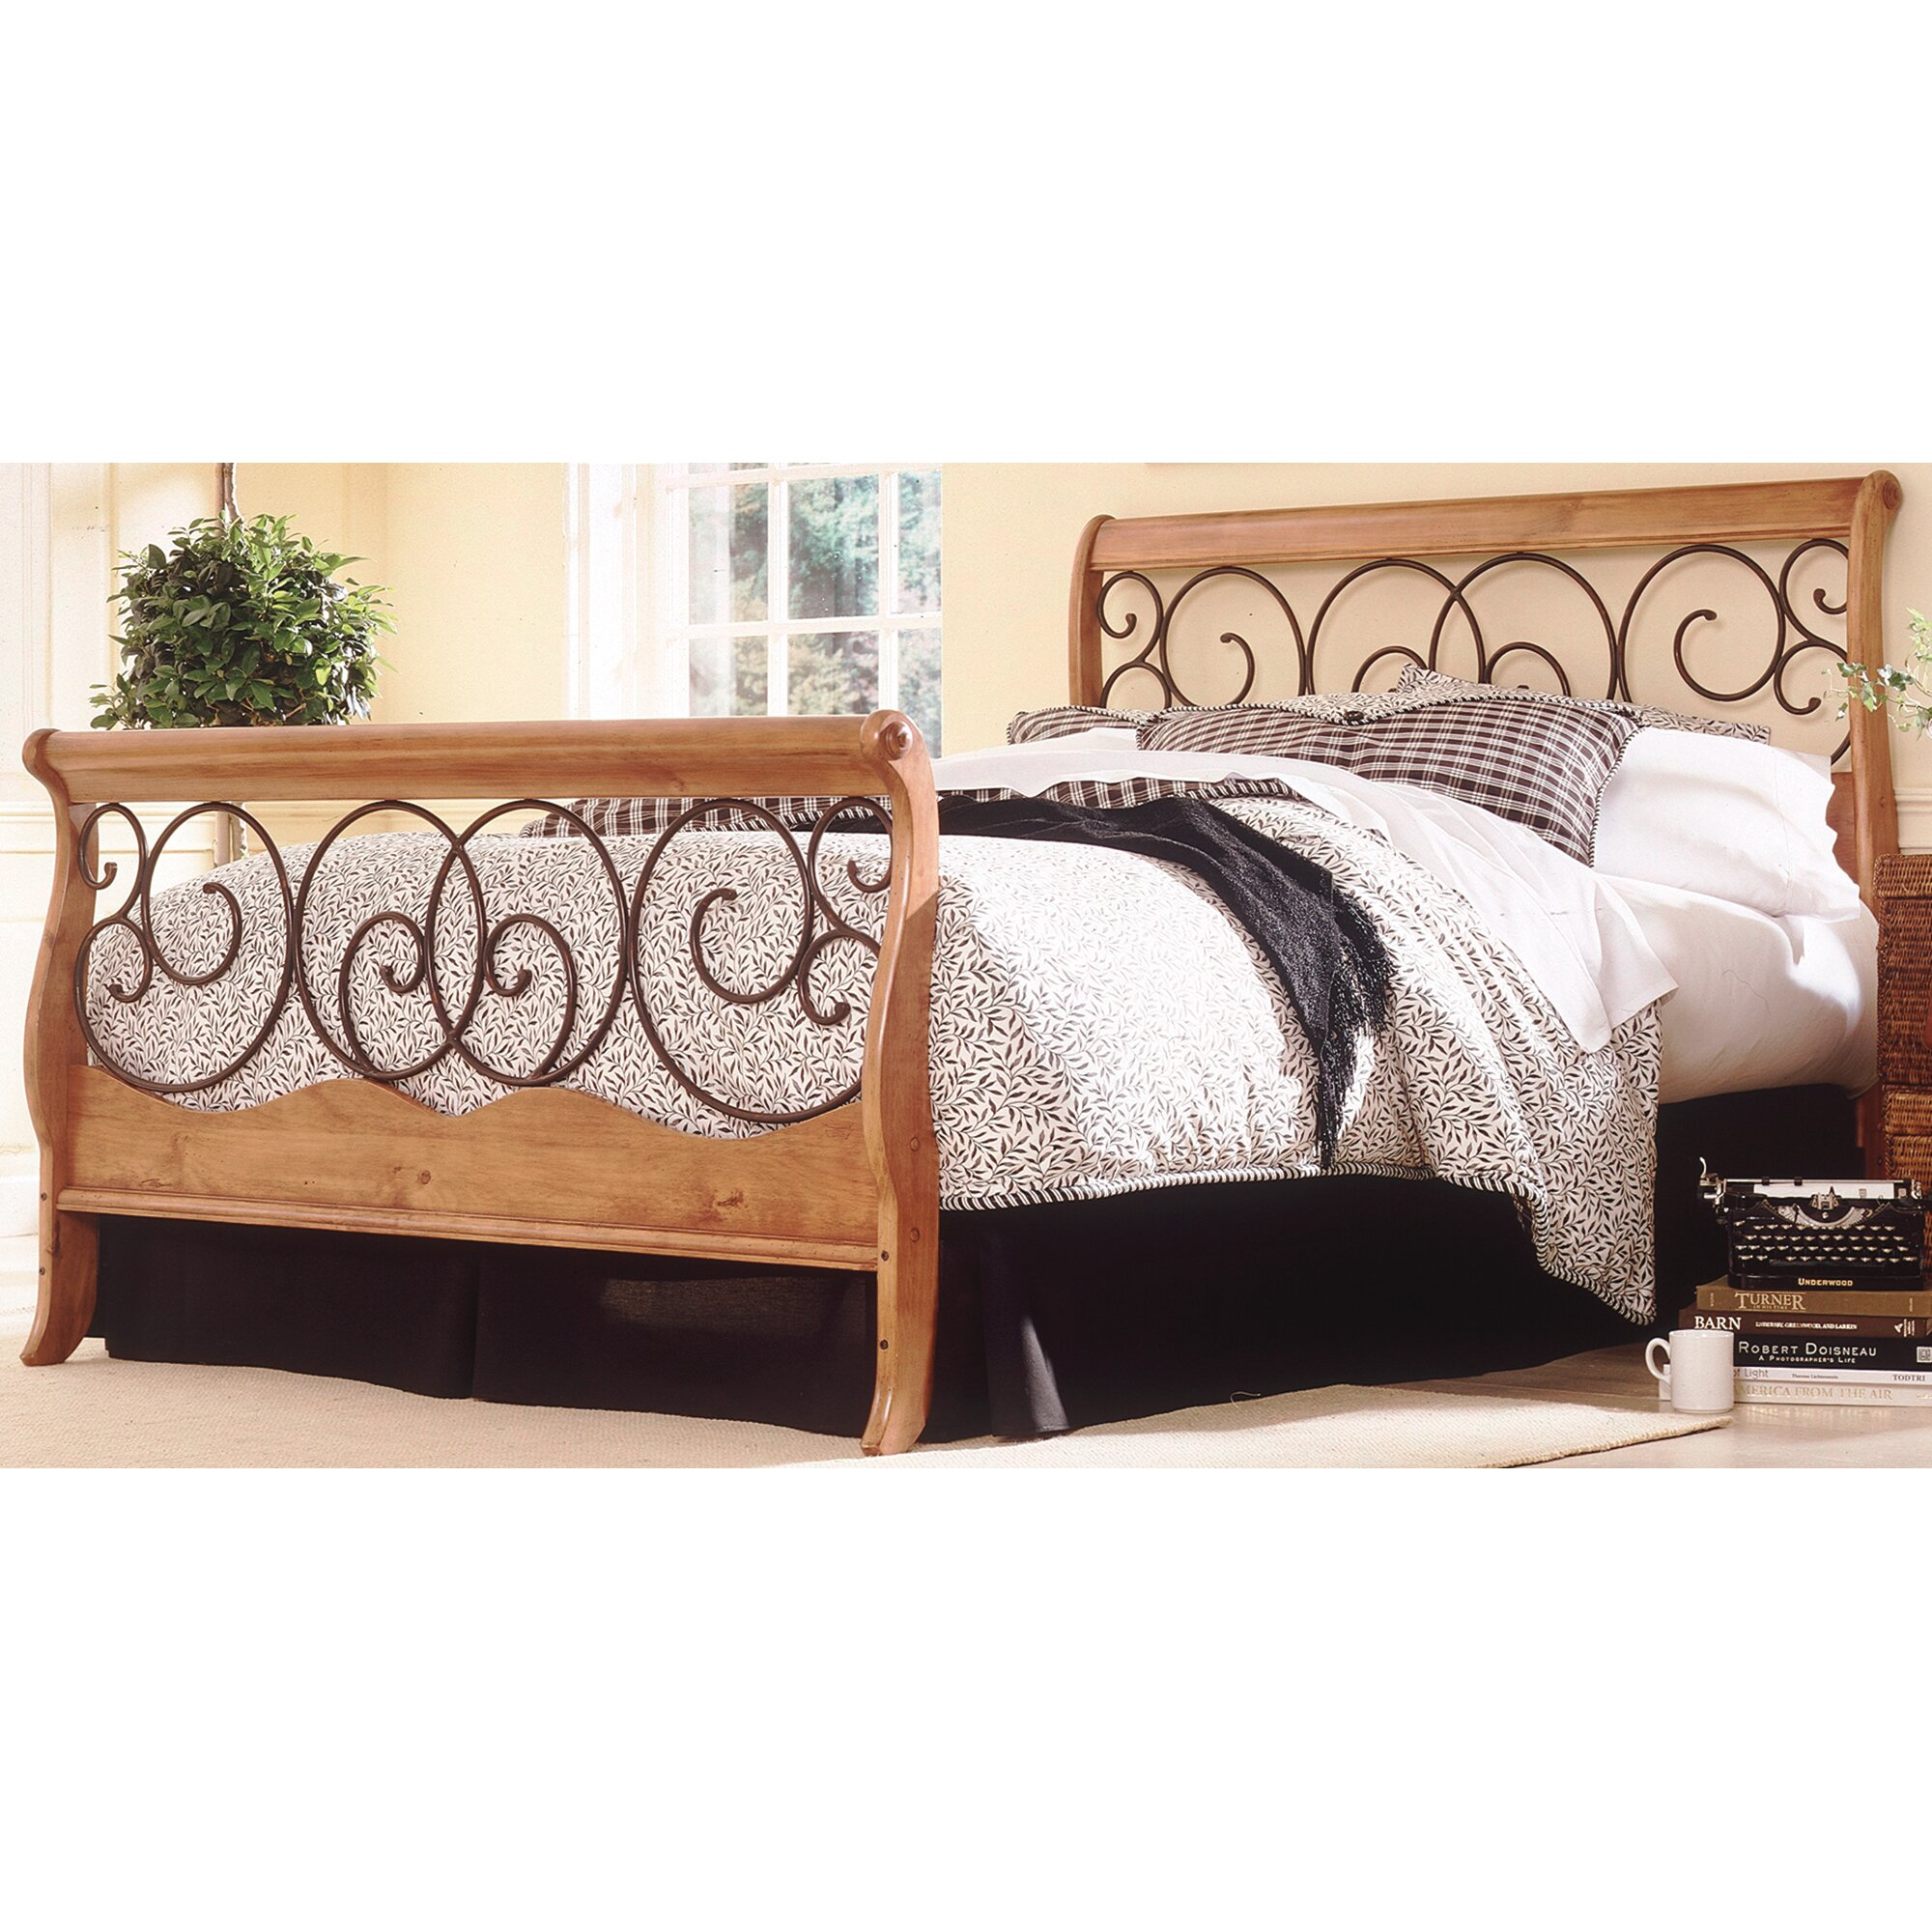 fashion bed group wood and metal sleigh bed reviews wayfair. Black Bedroom Furniture Sets. Home Design Ideas